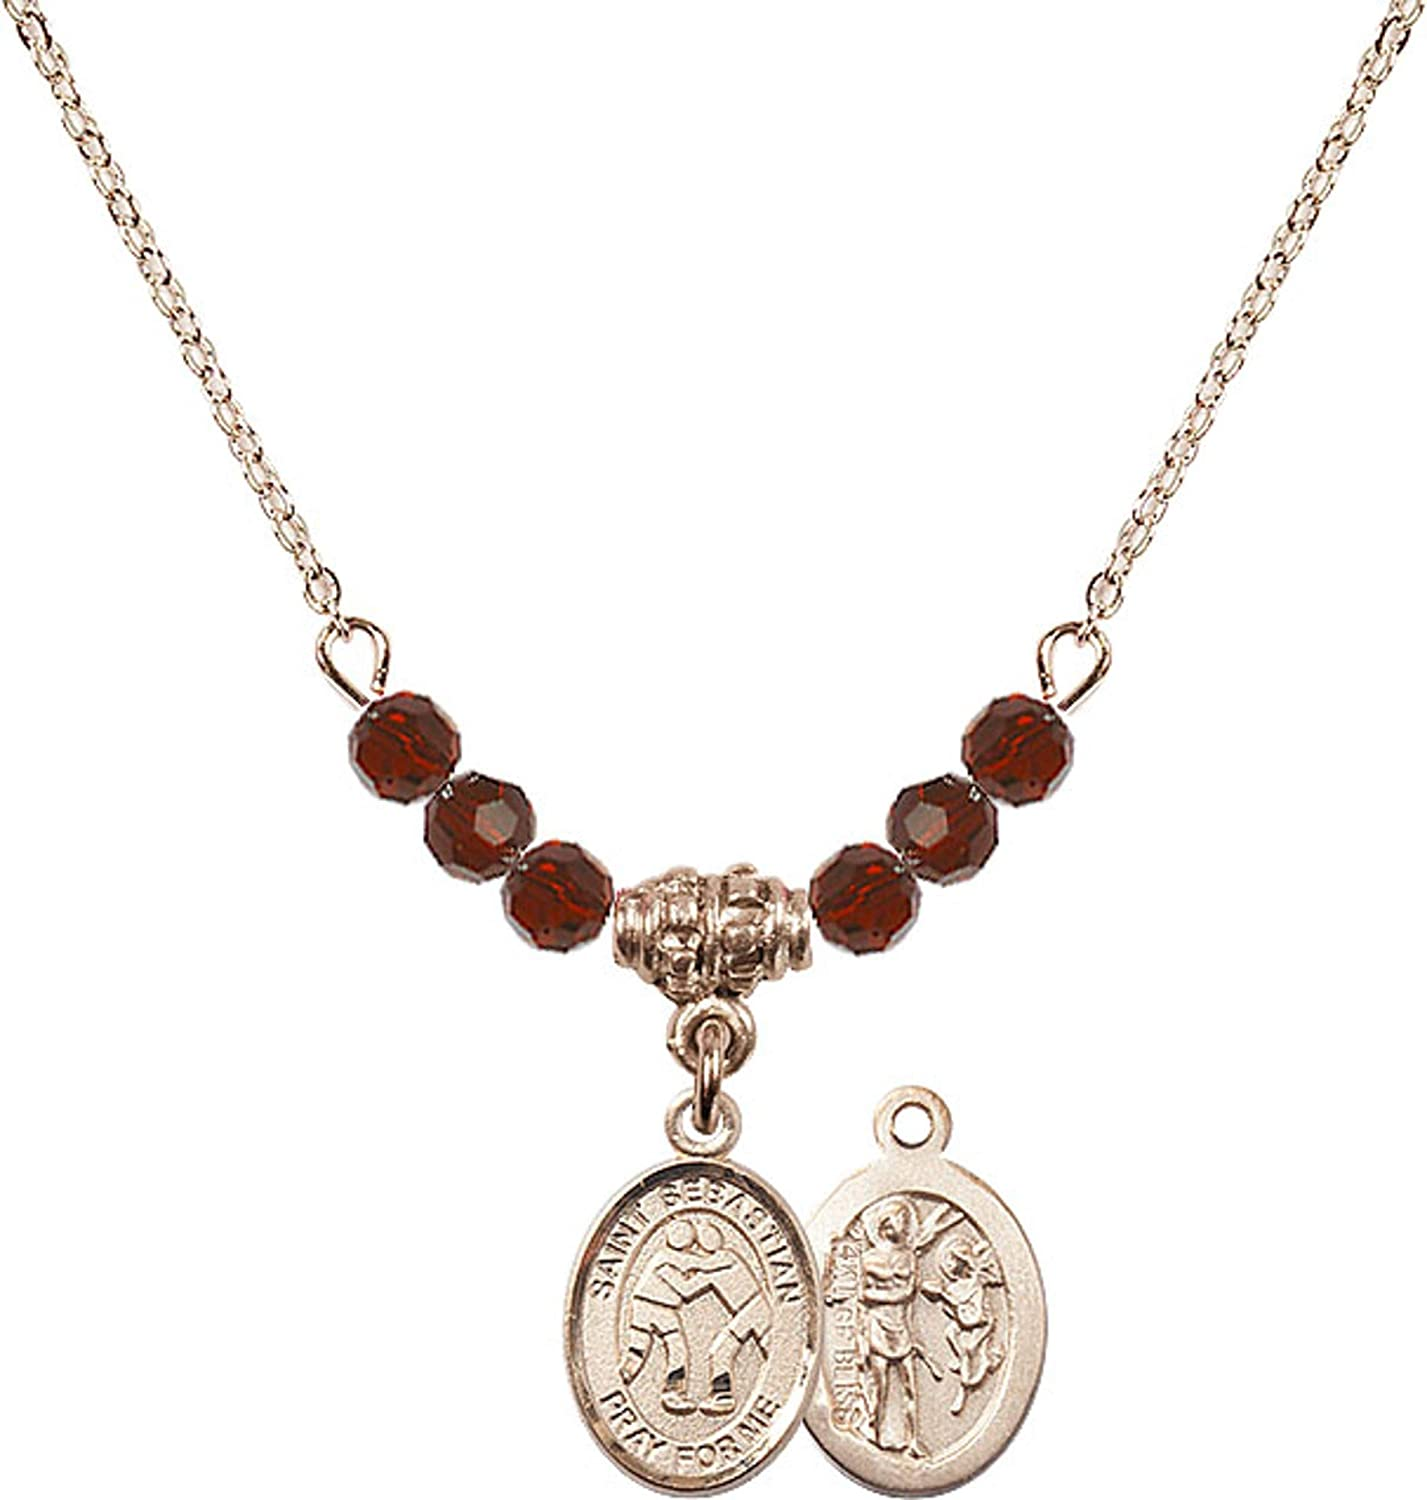 Bonyak Jewelry 18 Inch Hamilton Gold Plated Necklace w// 4mm Red January Birth Month Stone Beads and Saint Sebastian//Wrestling Charm